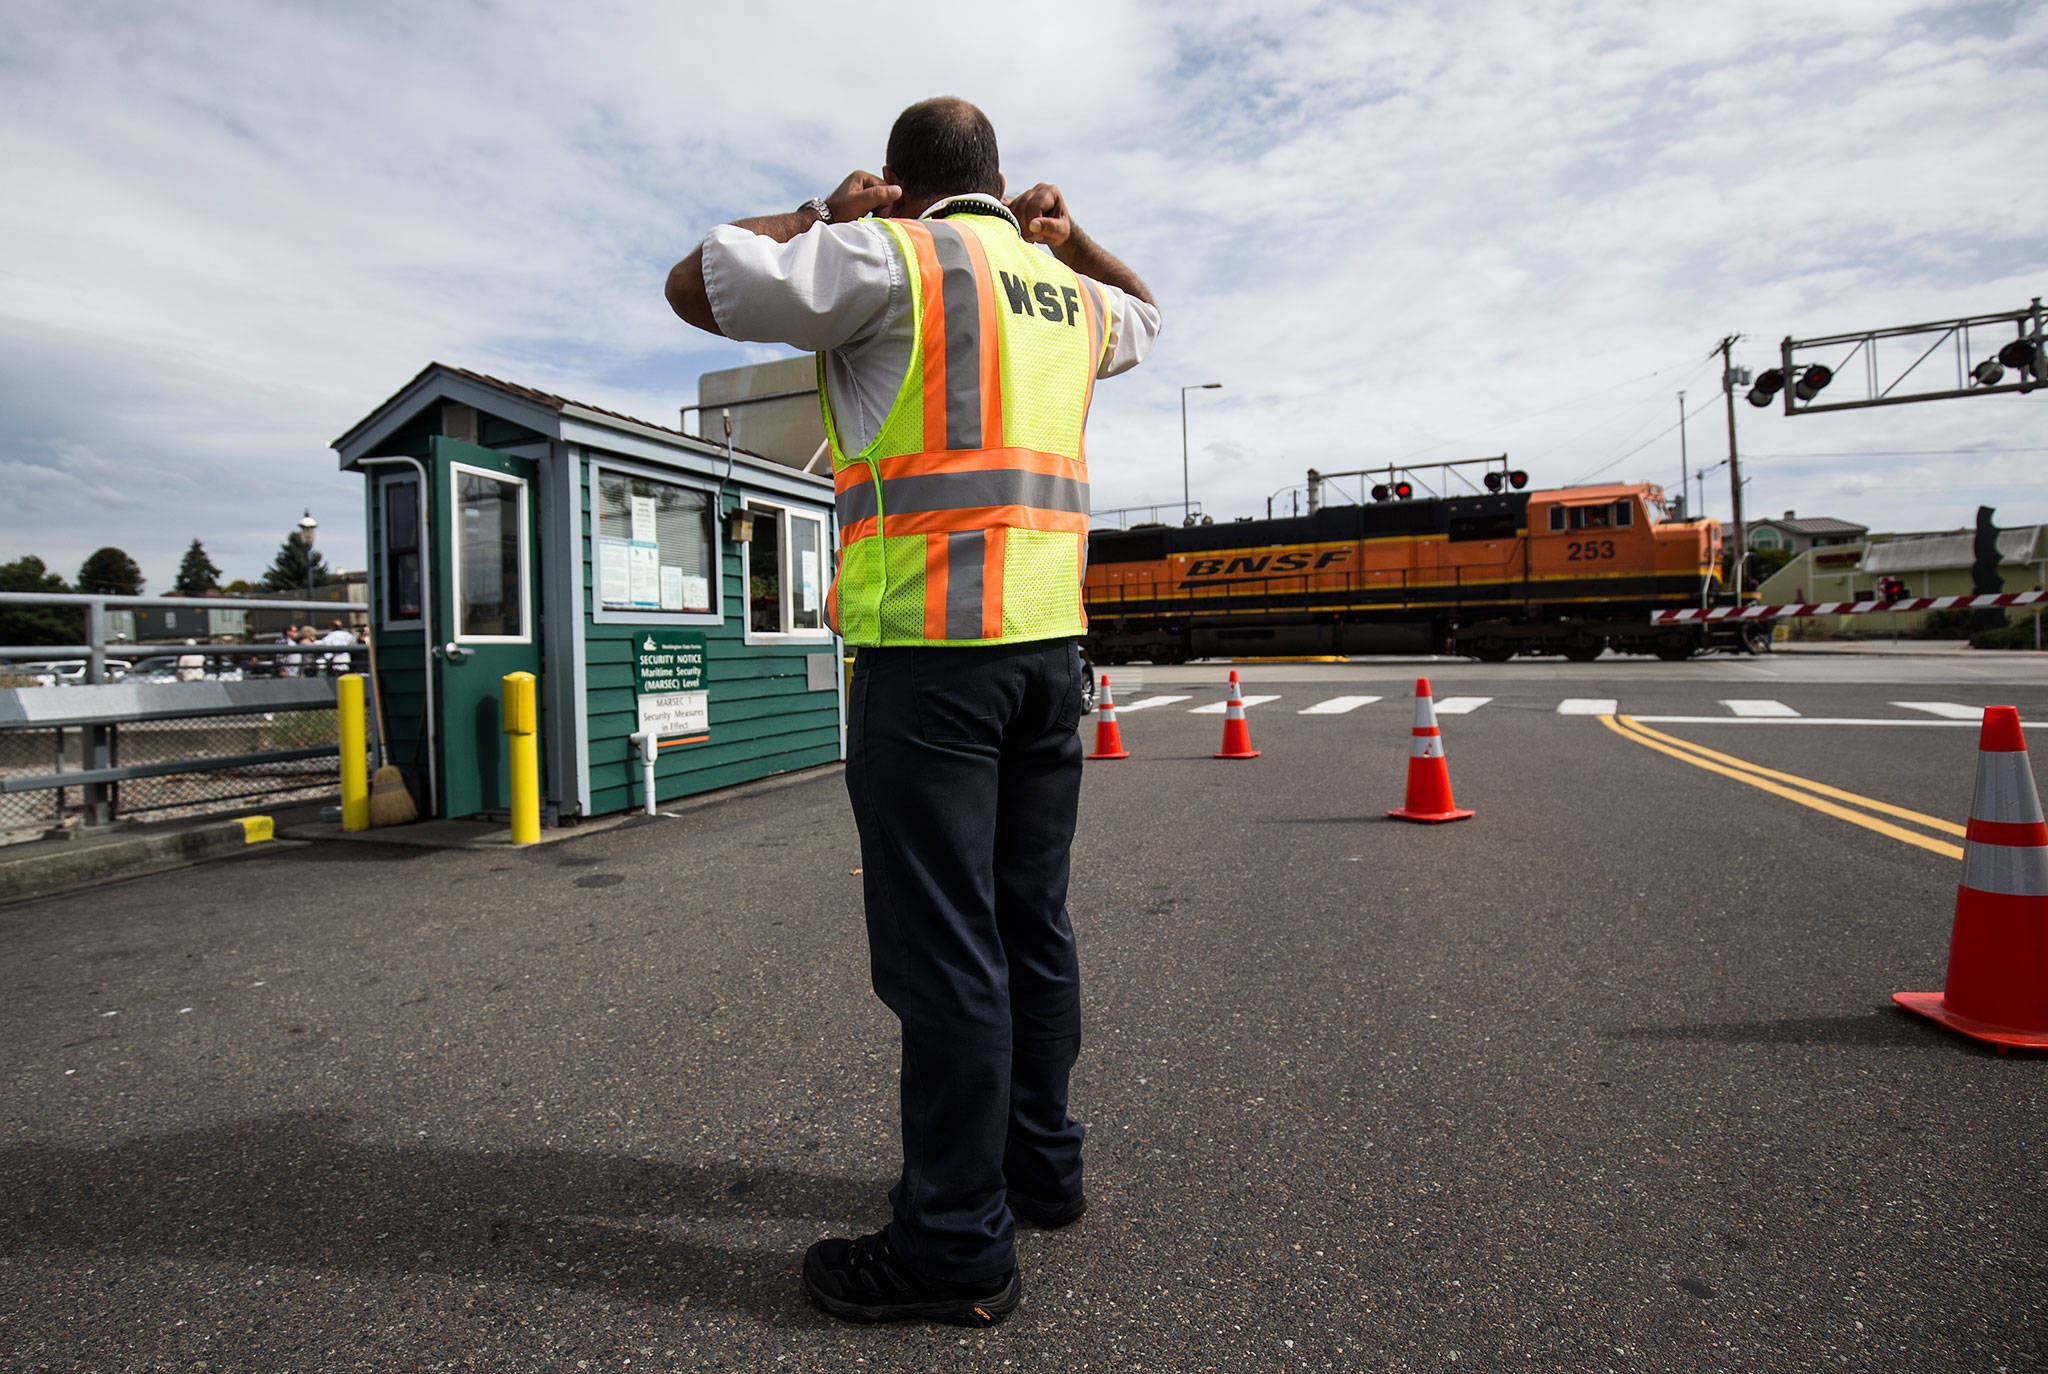 Washington State Ferries traffic attendant Brian Green plug his ears as a train blows its horn while heading south at the Edmonds Ferry dock on Friday, Sept. 21, 2018 in Edmonds, Wa. While Amtrak and the Sounder keep to a fixed schedule, the BNSF trains randomly block traffic when heading north or south. (Andy Bronson / The Herald)